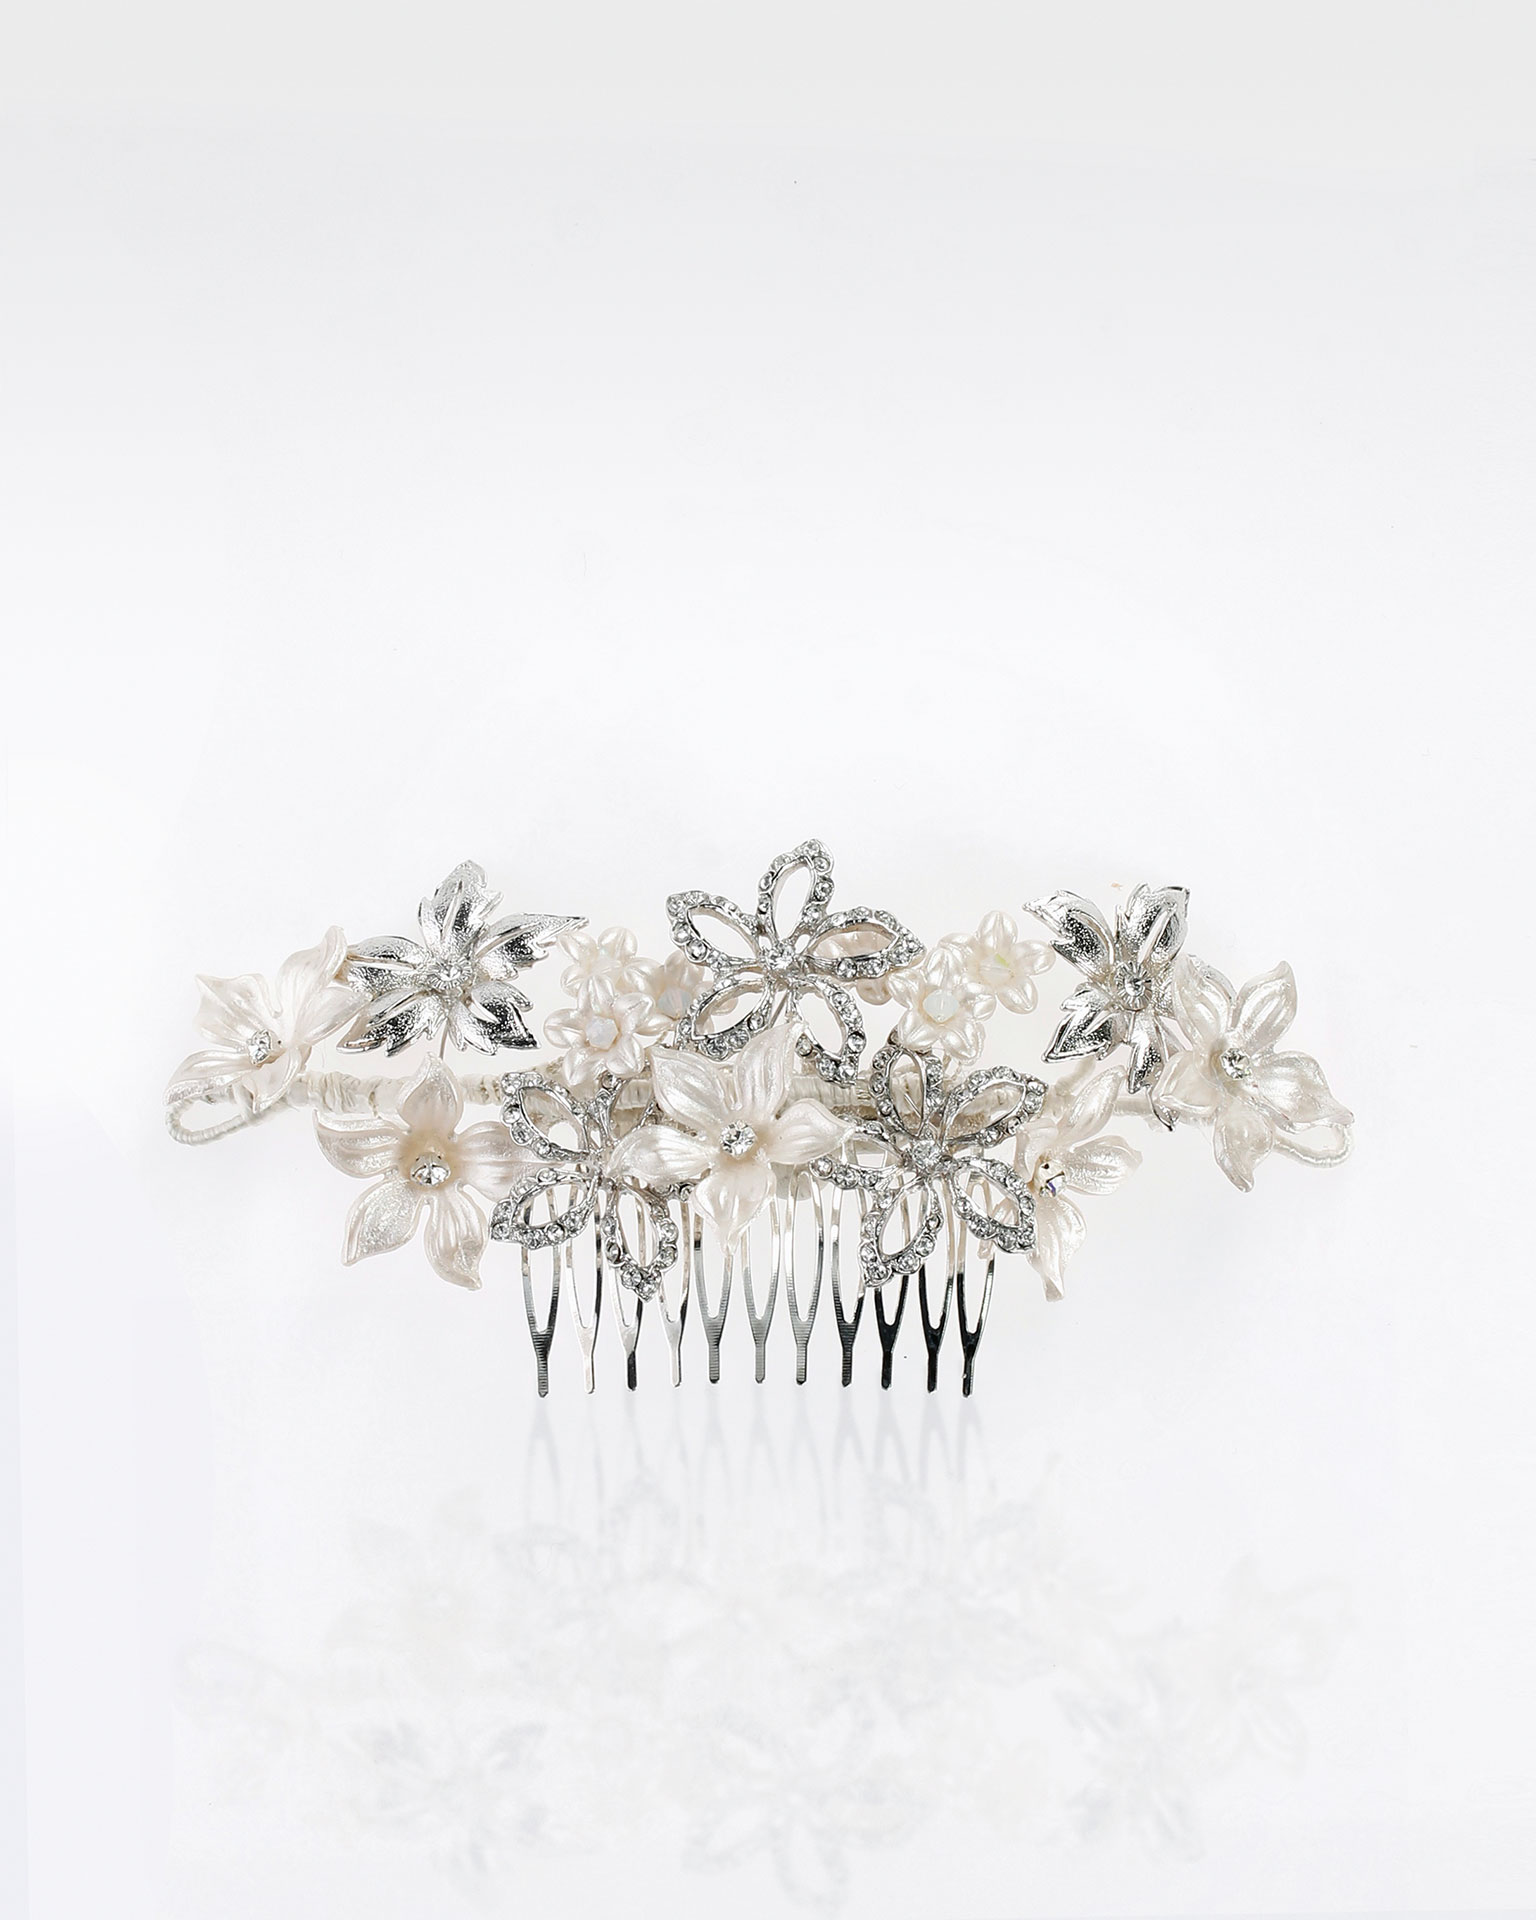 Bridal mantilla comb with resin flowers, metal and crystal detail. Available in natural. 2019 MARTHA_BLANC Collection.